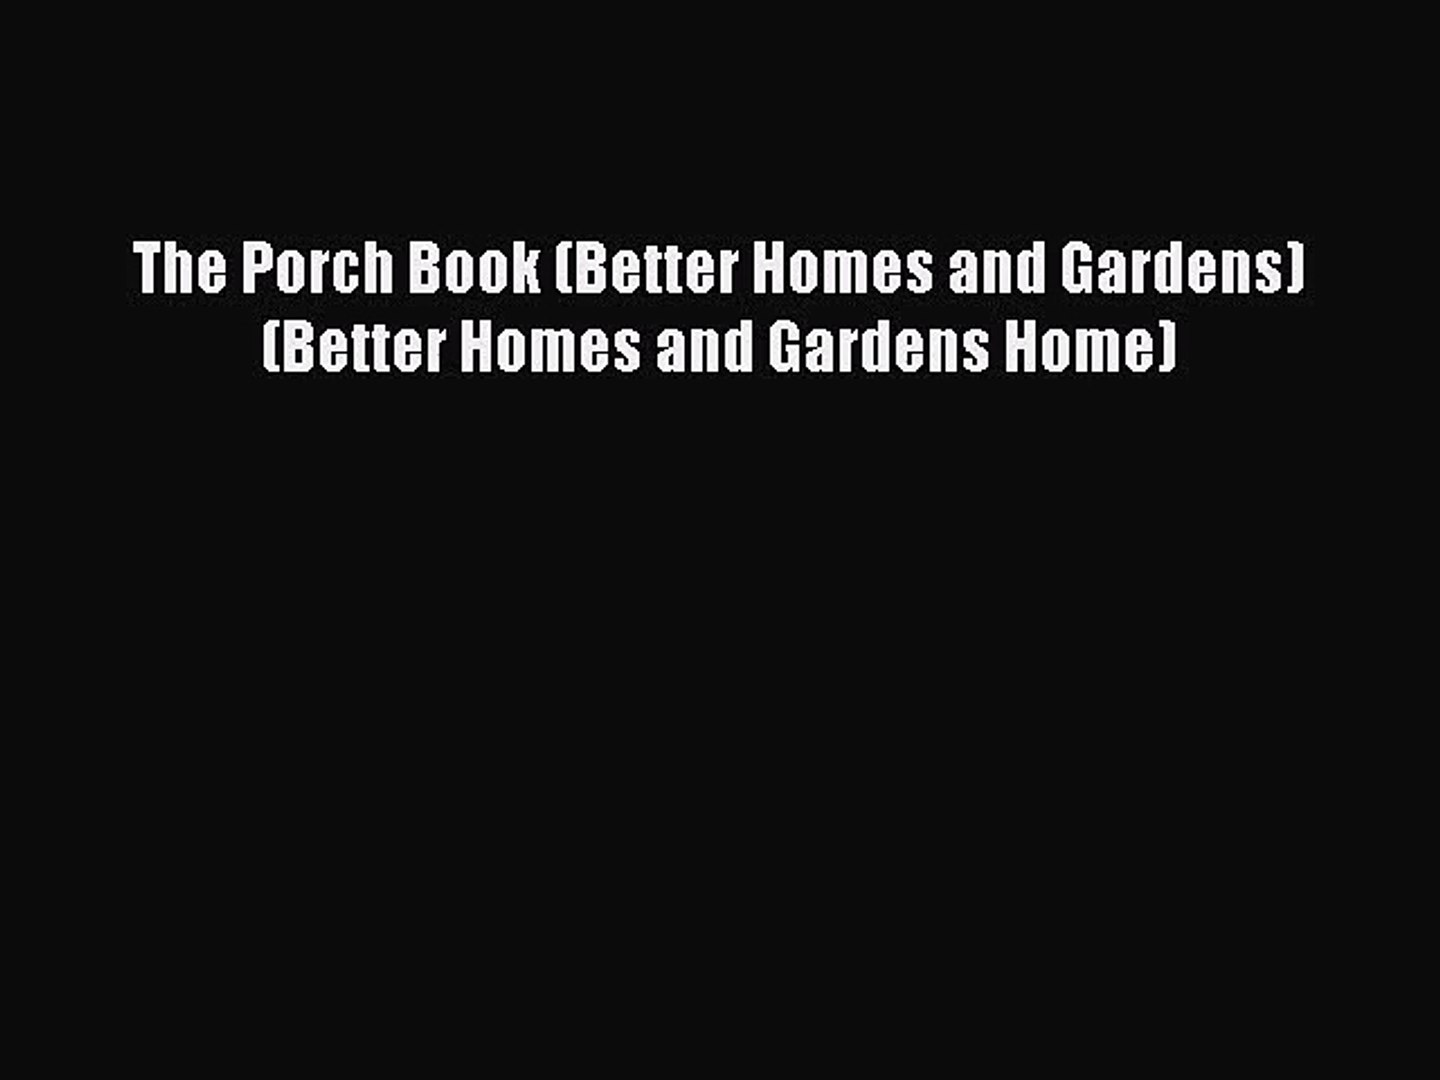 PDF Download The Porch Book (Better Homes and Gardens) (Better Homes and Gardens Home) Read